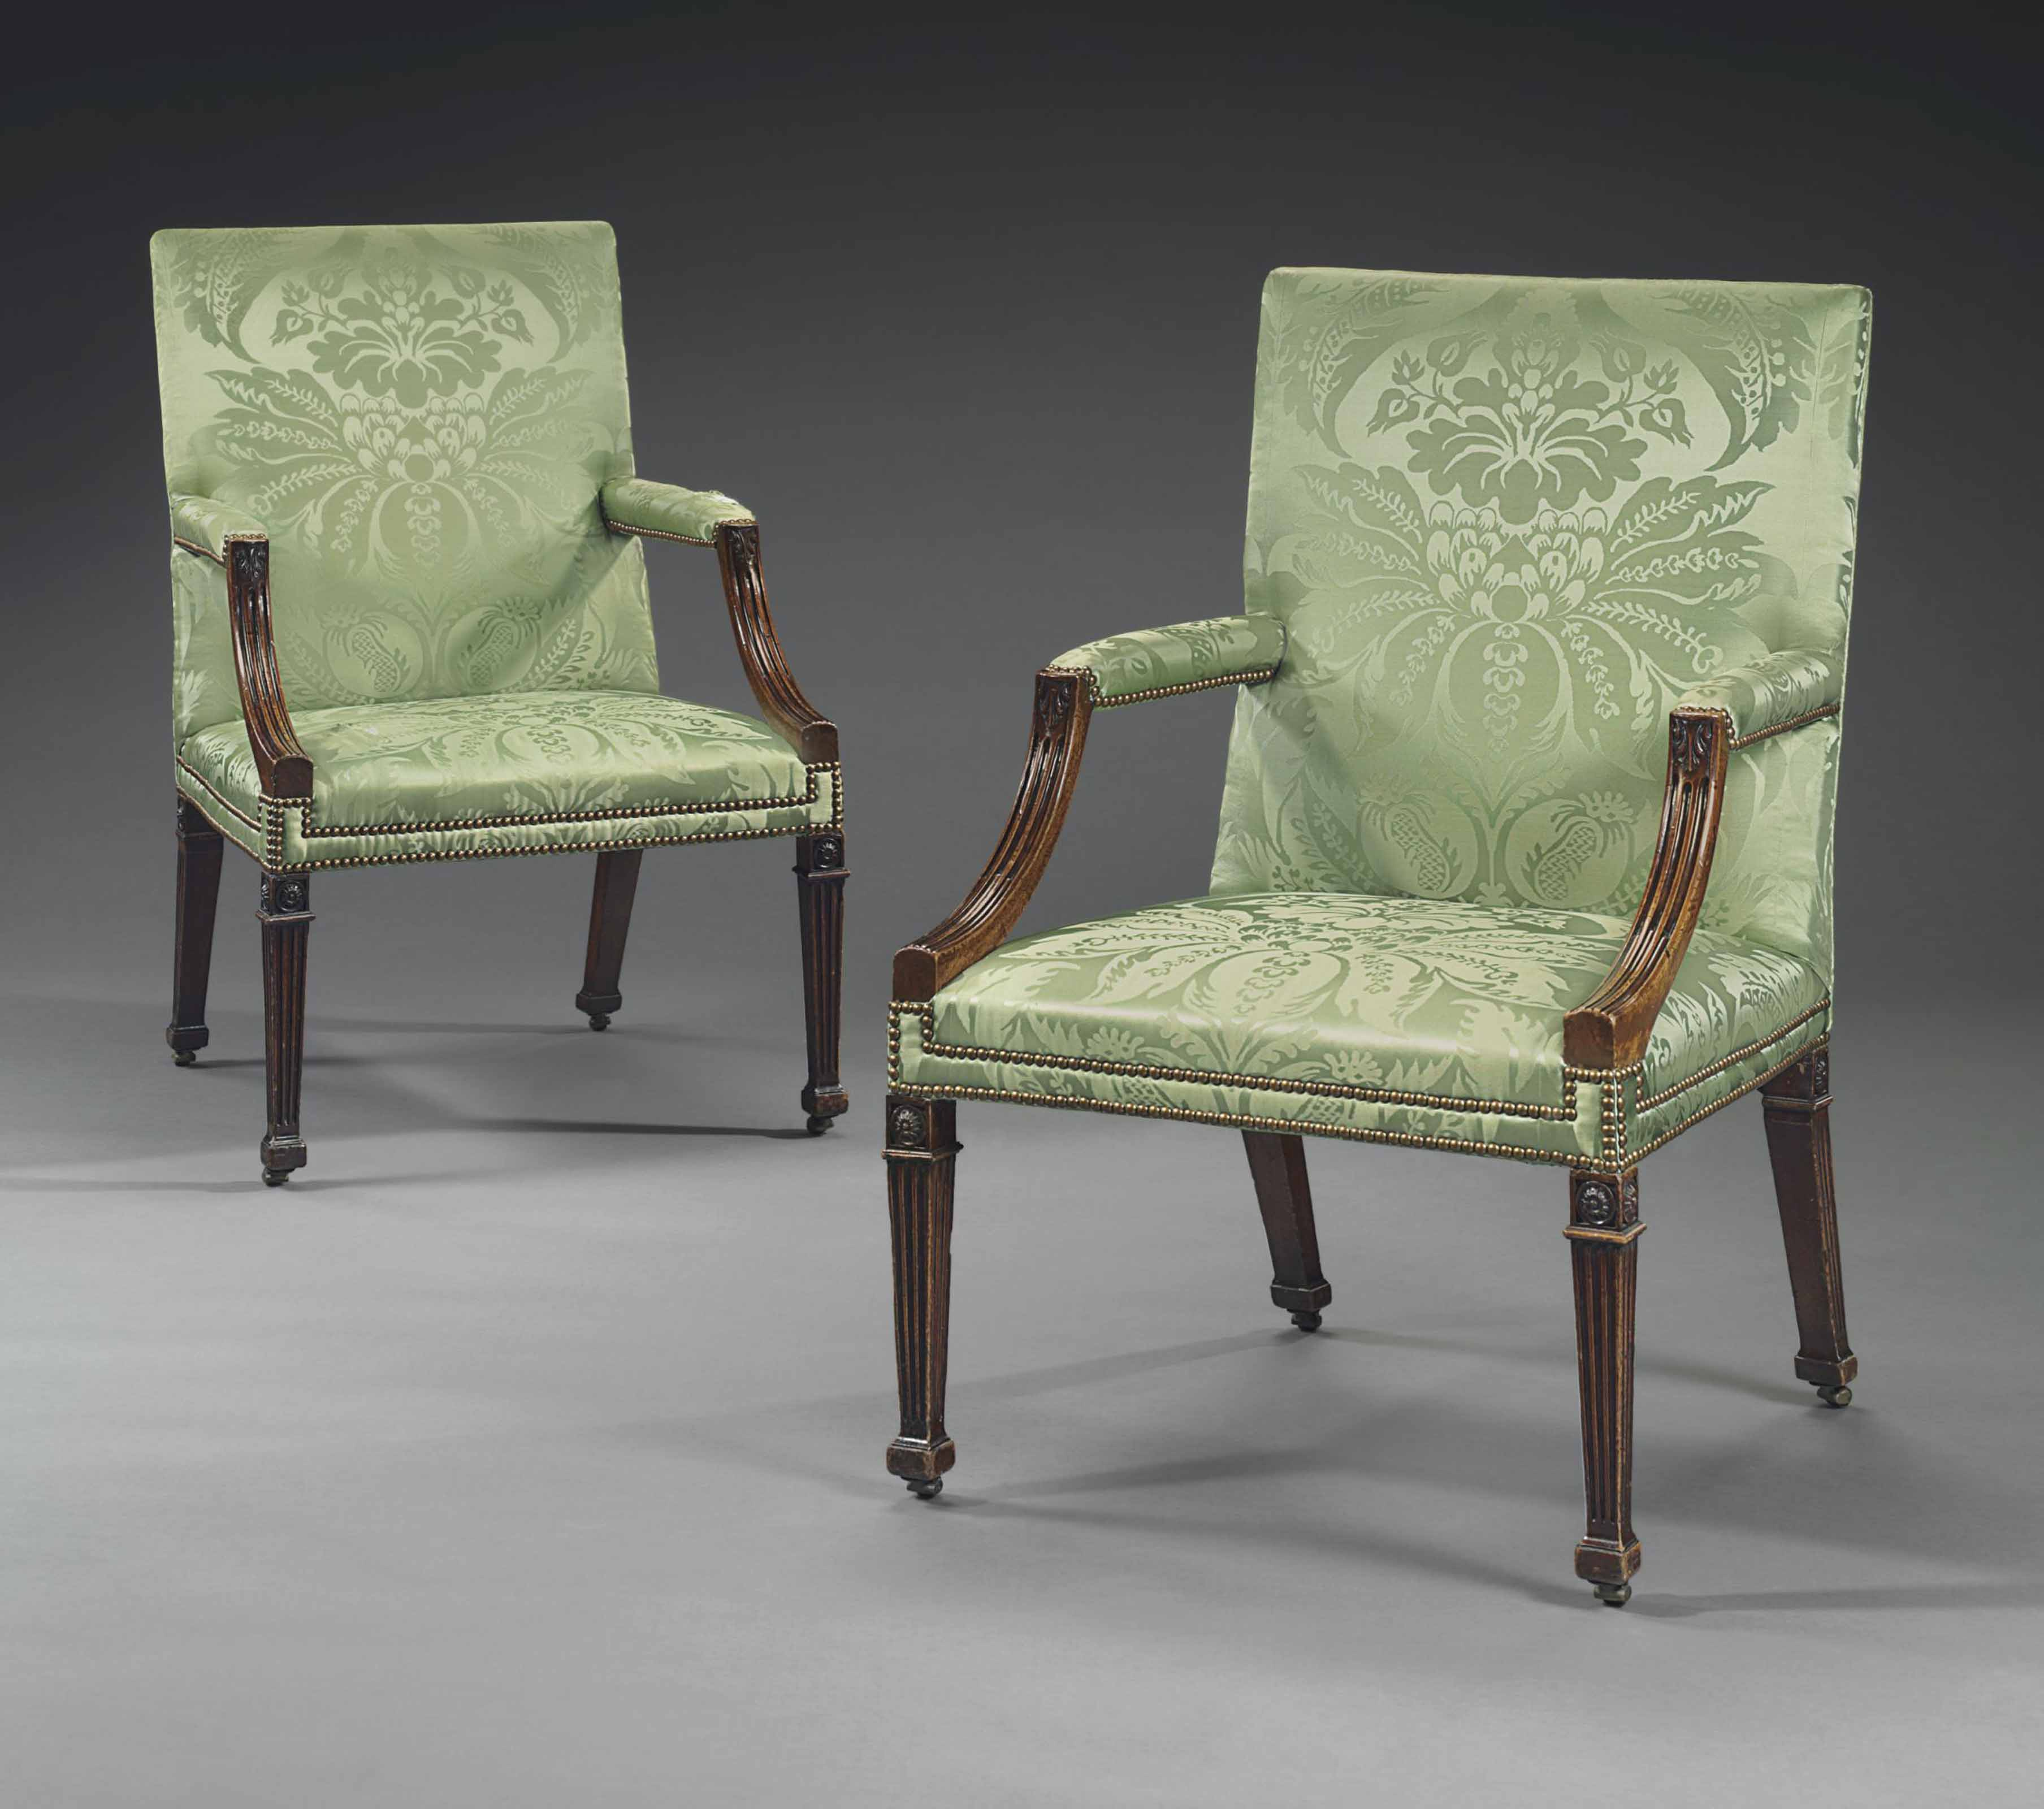 A PAIR OF GEORGE III MAHOGANY OPEN ARMCHAIRS